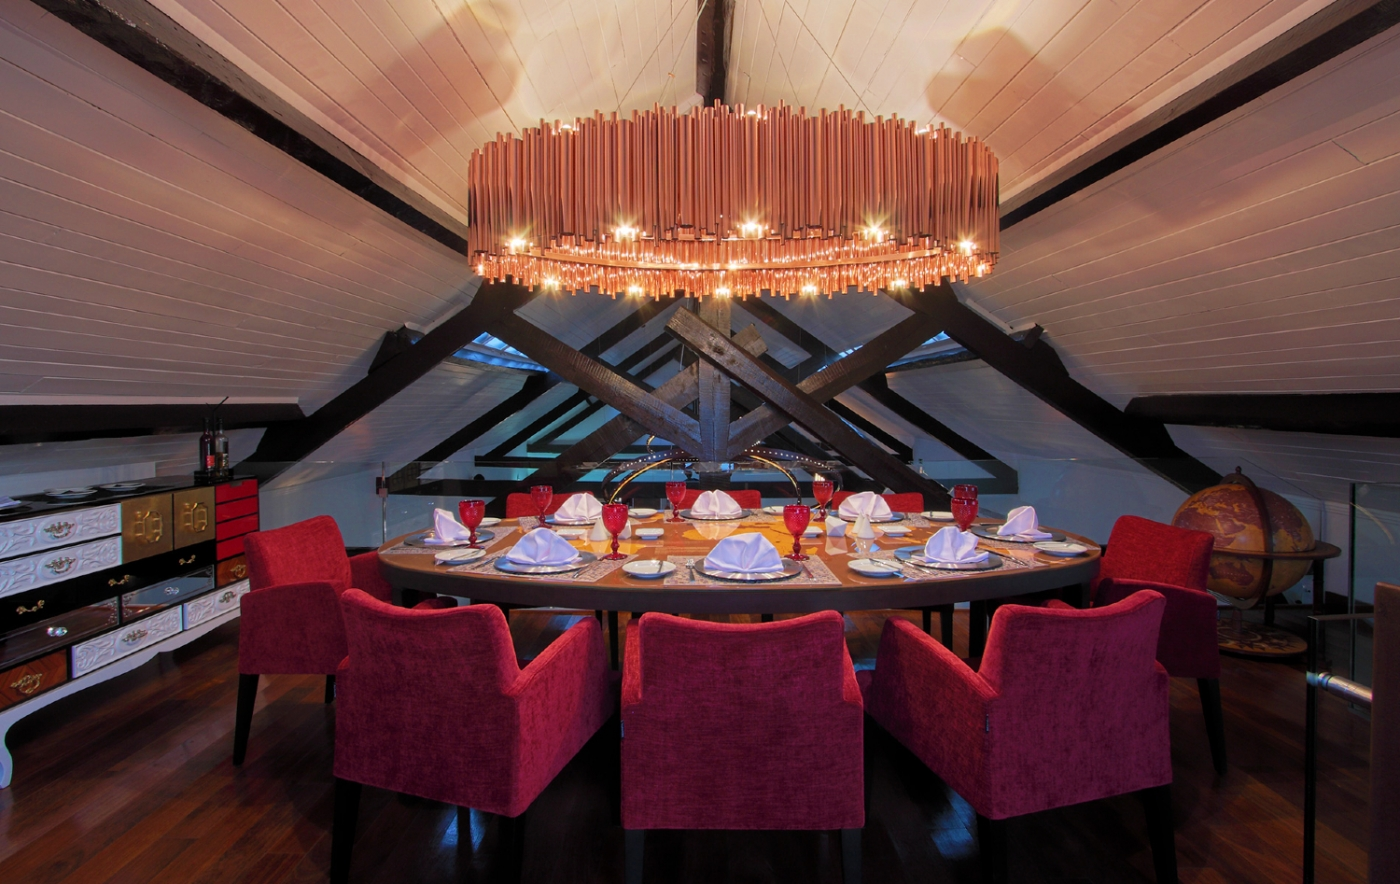 salpoente restaurant Salpoente Restaurant: Modern Design Merged With Fine Dining feature image salponte 1400x884